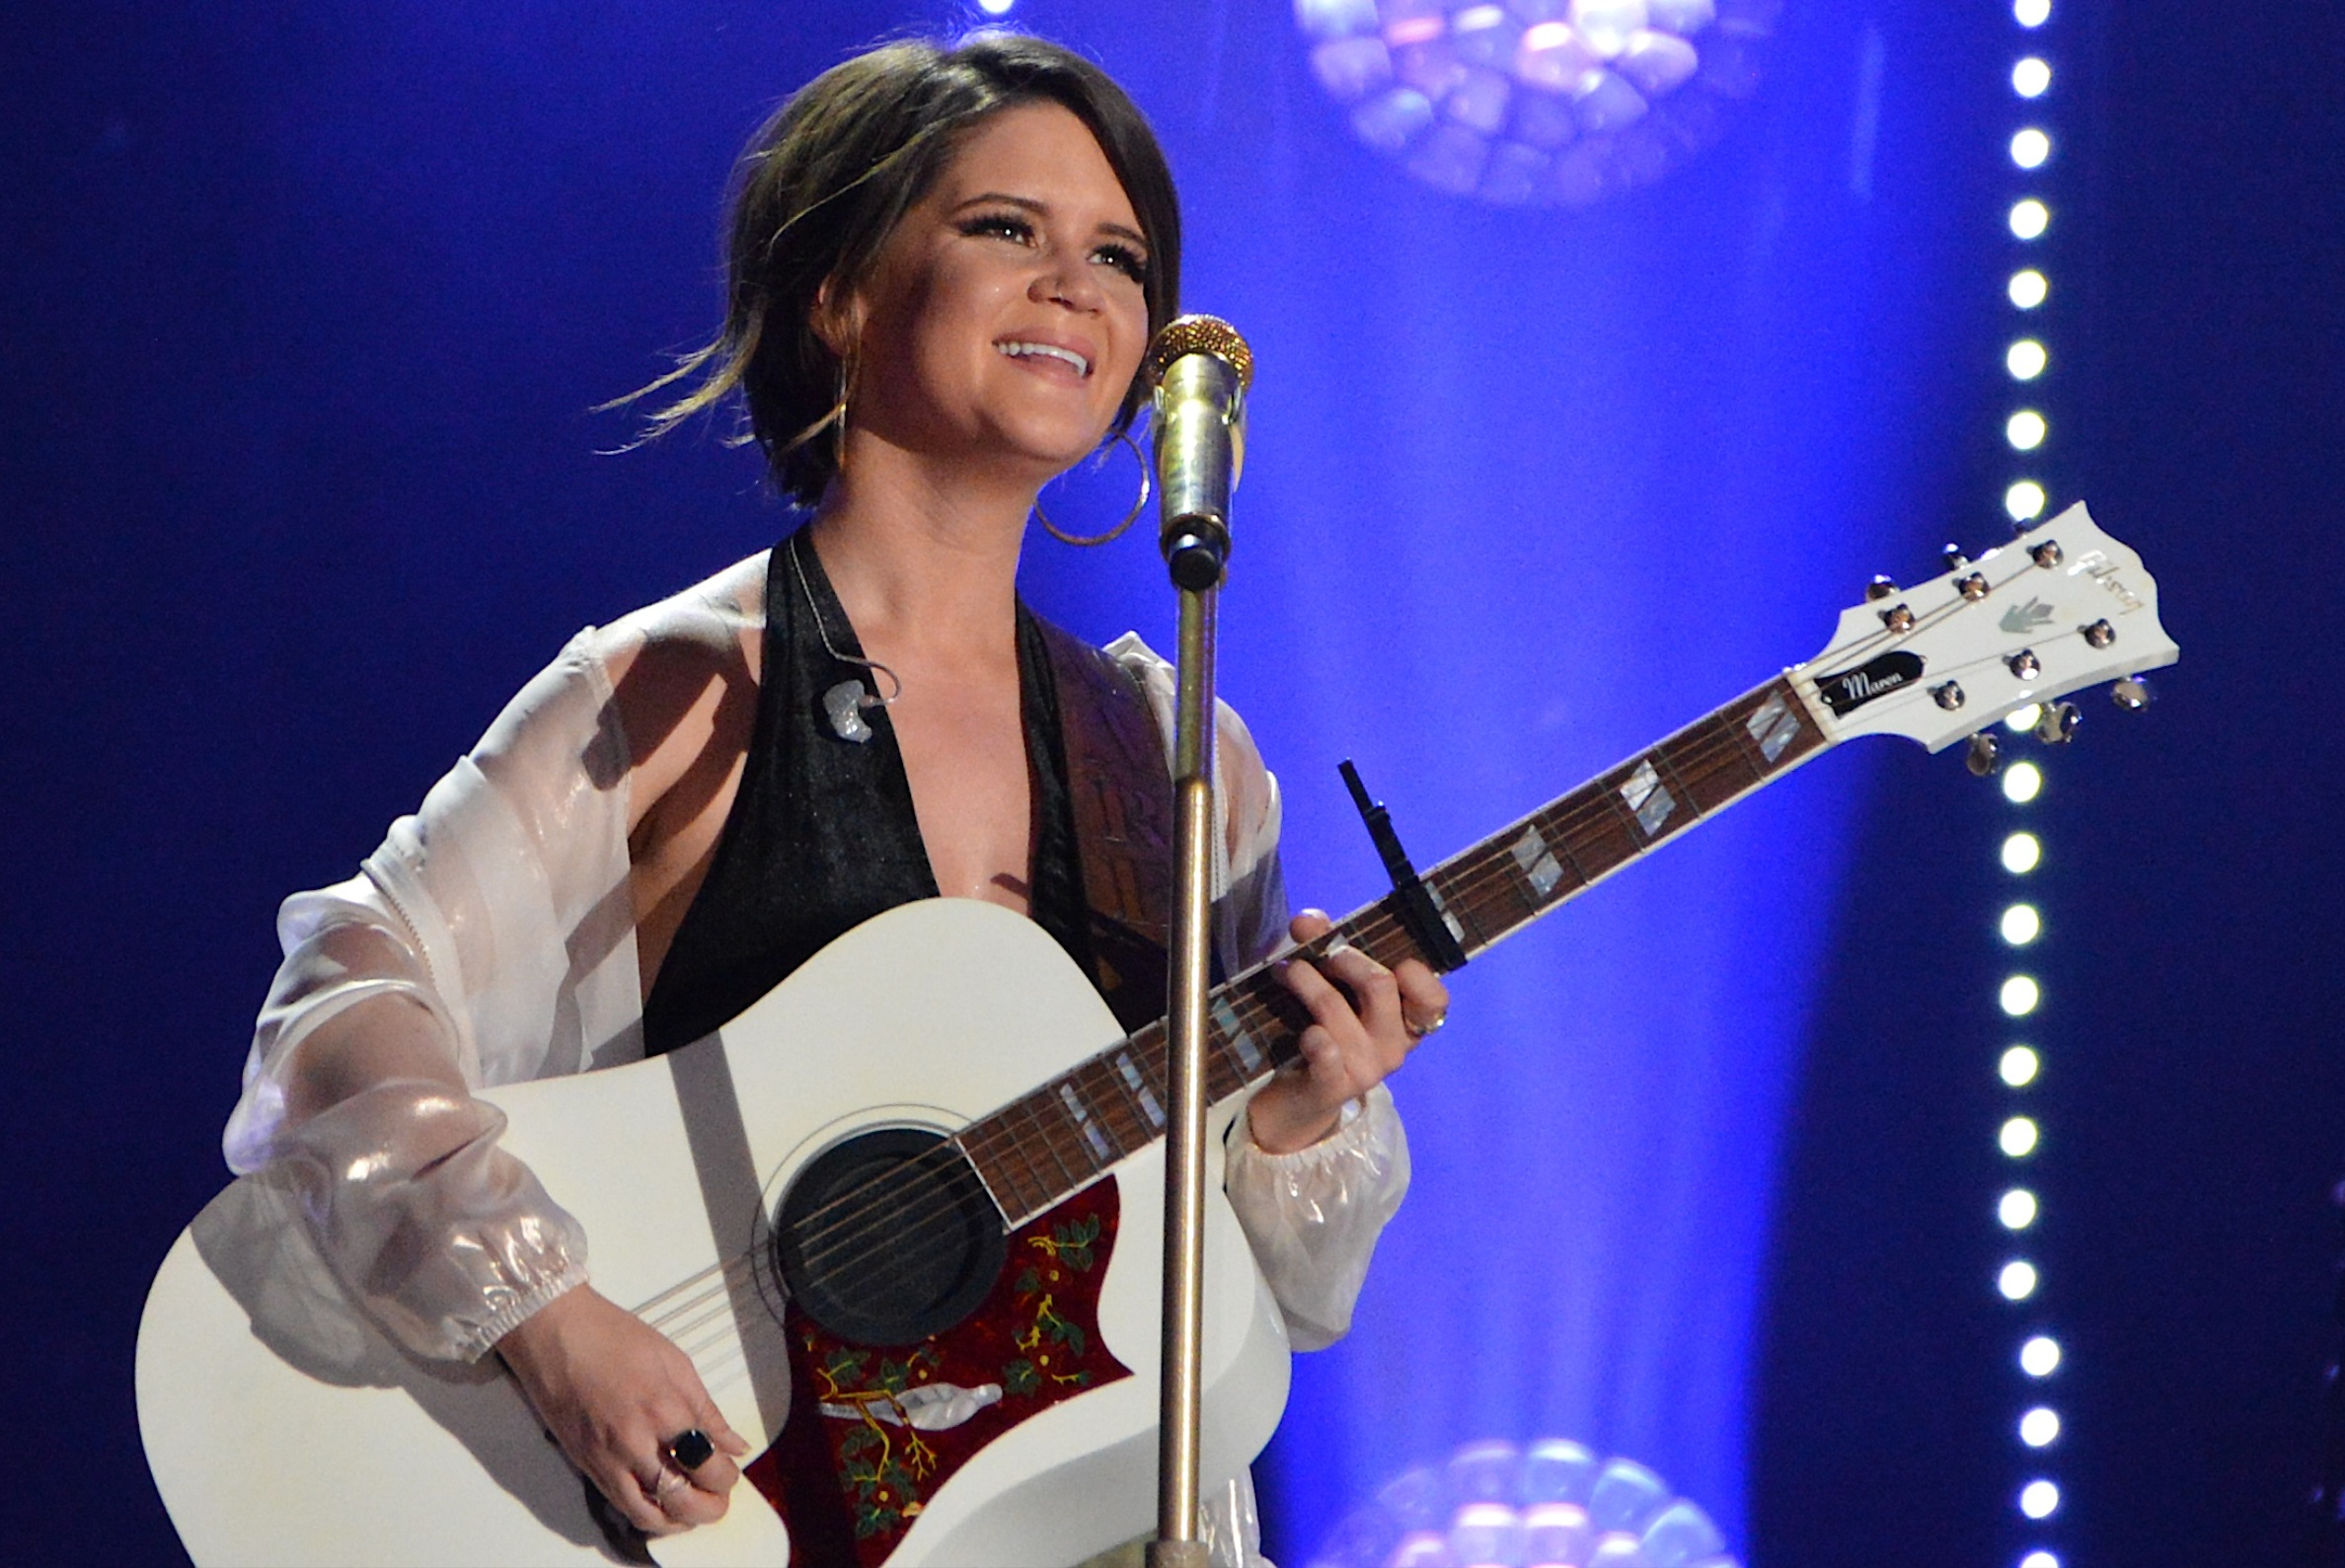 Maren Morris Teases New Music On Her Fifth Anniversary of Moving to Nashville